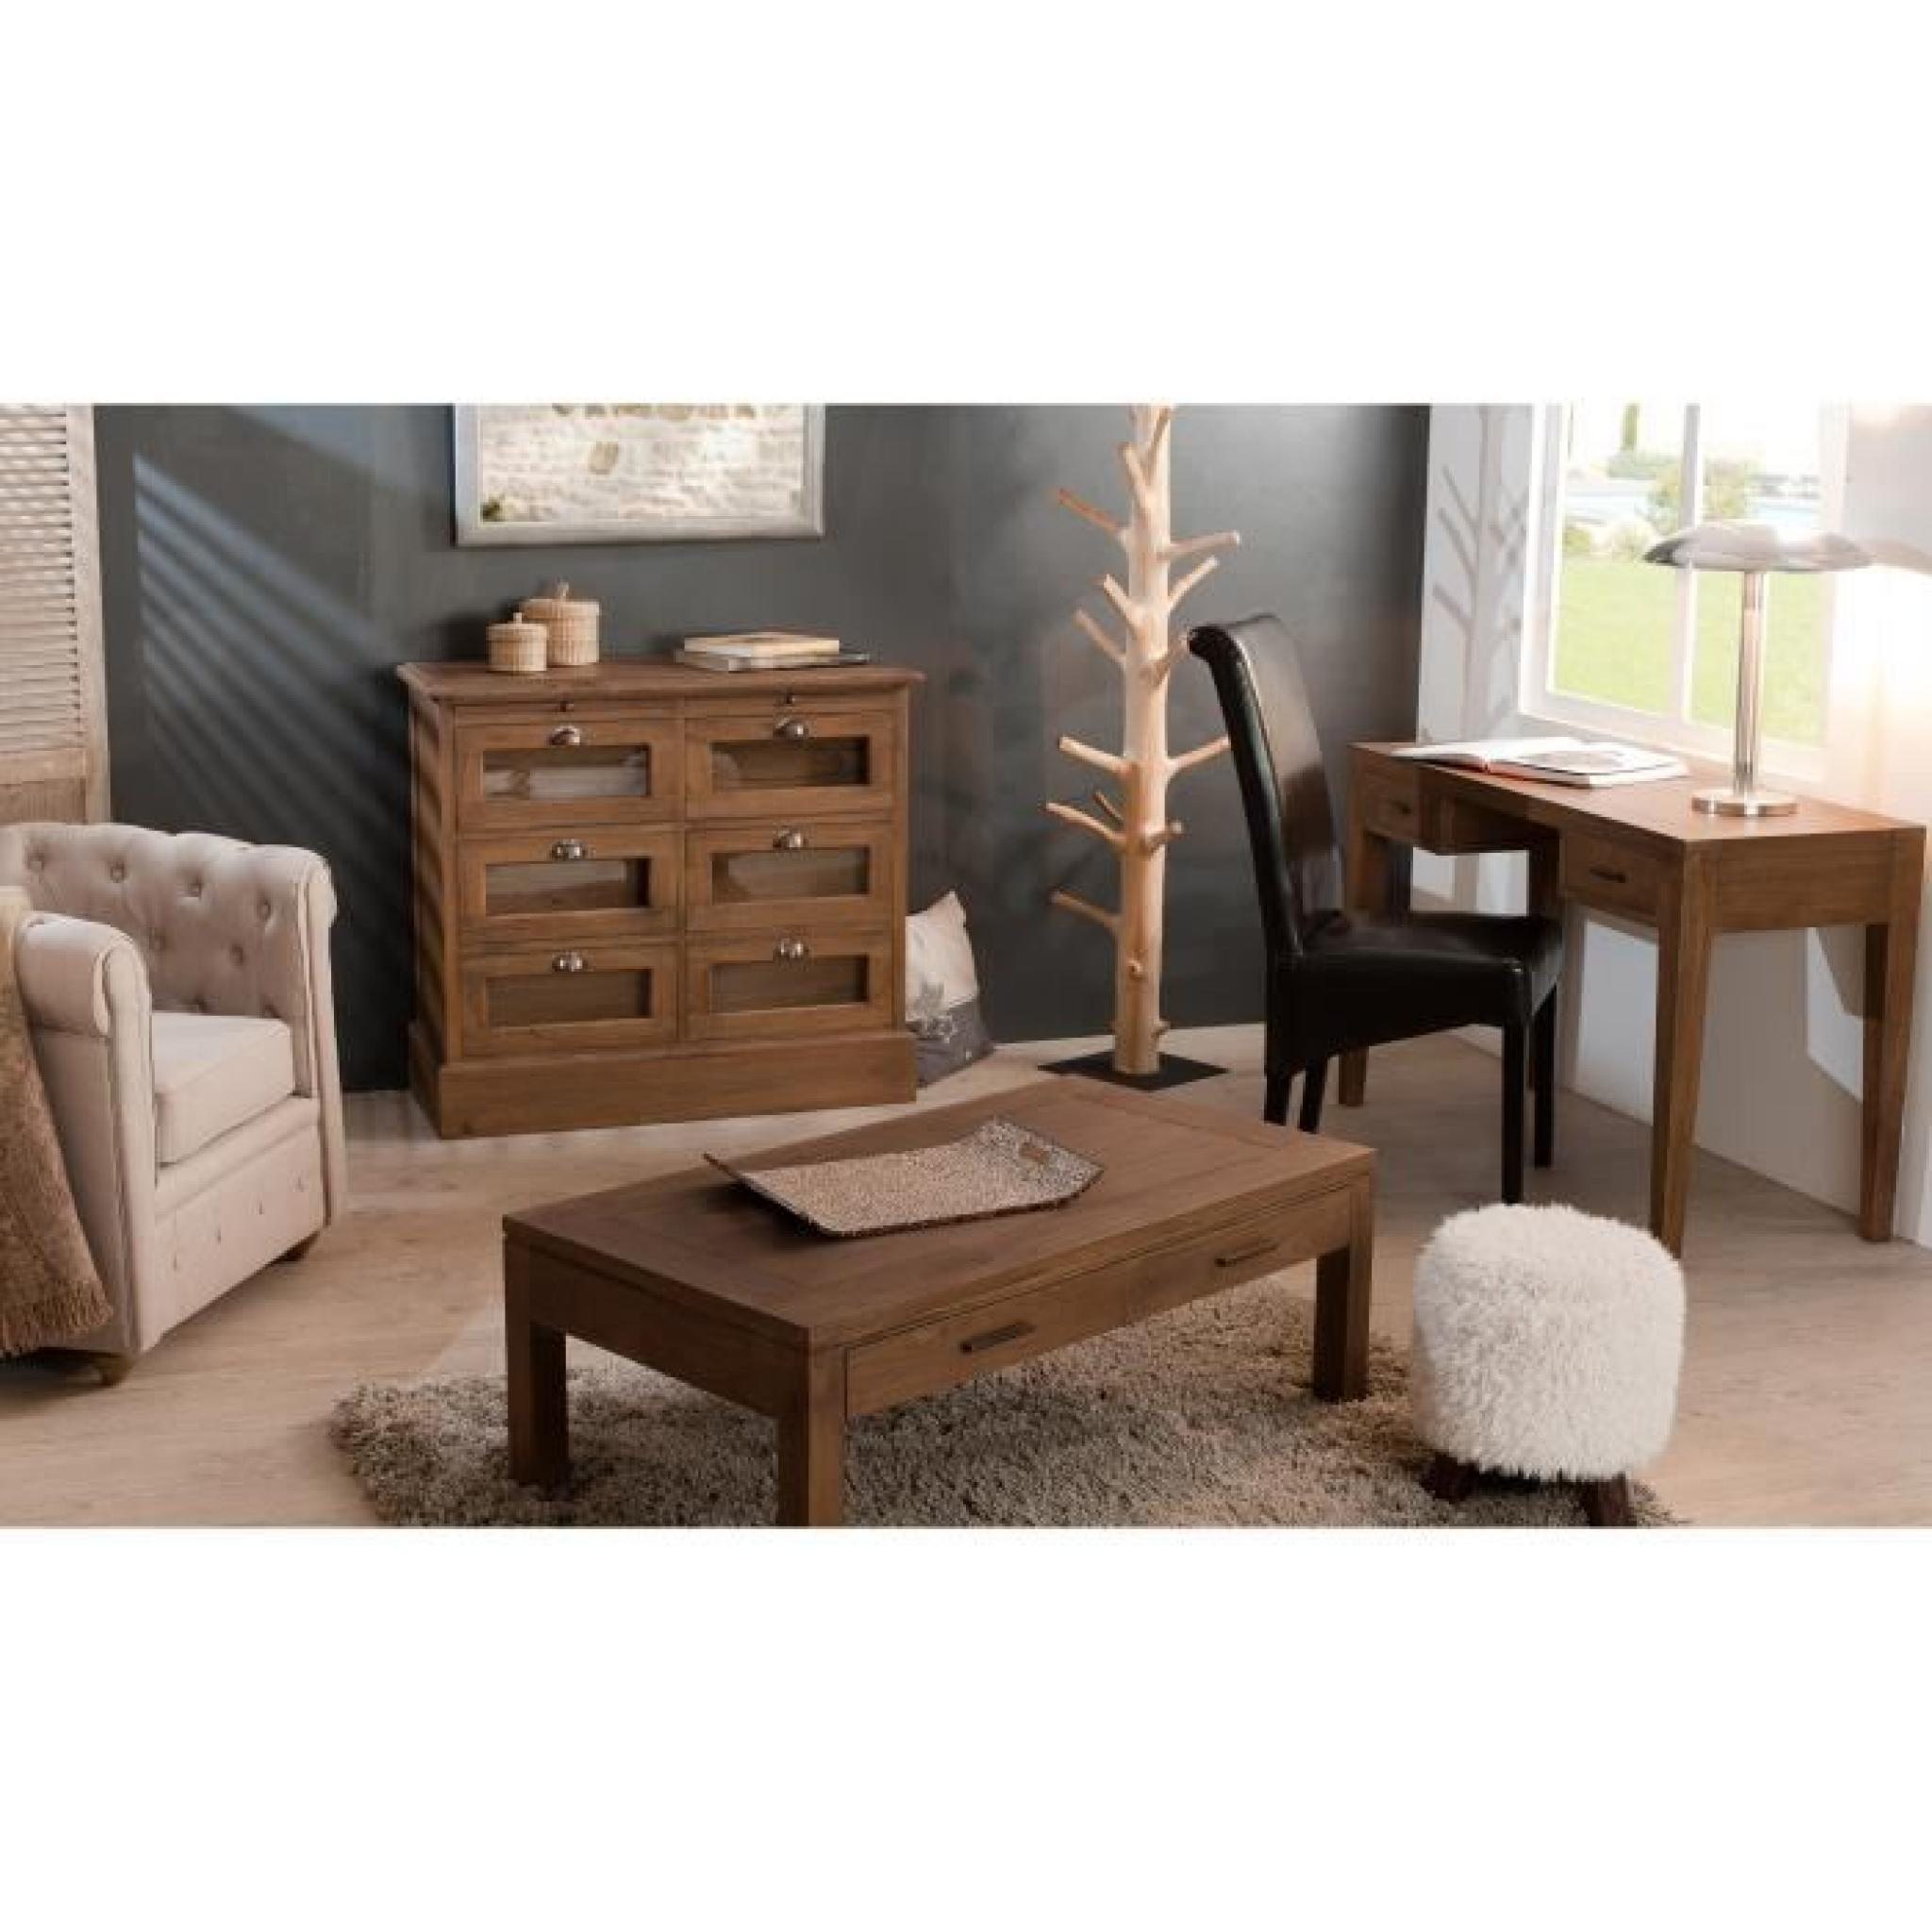 malaga grainetier 100 cm mindi et contreplaqu achat. Black Bedroom Furniture Sets. Home Design Ideas